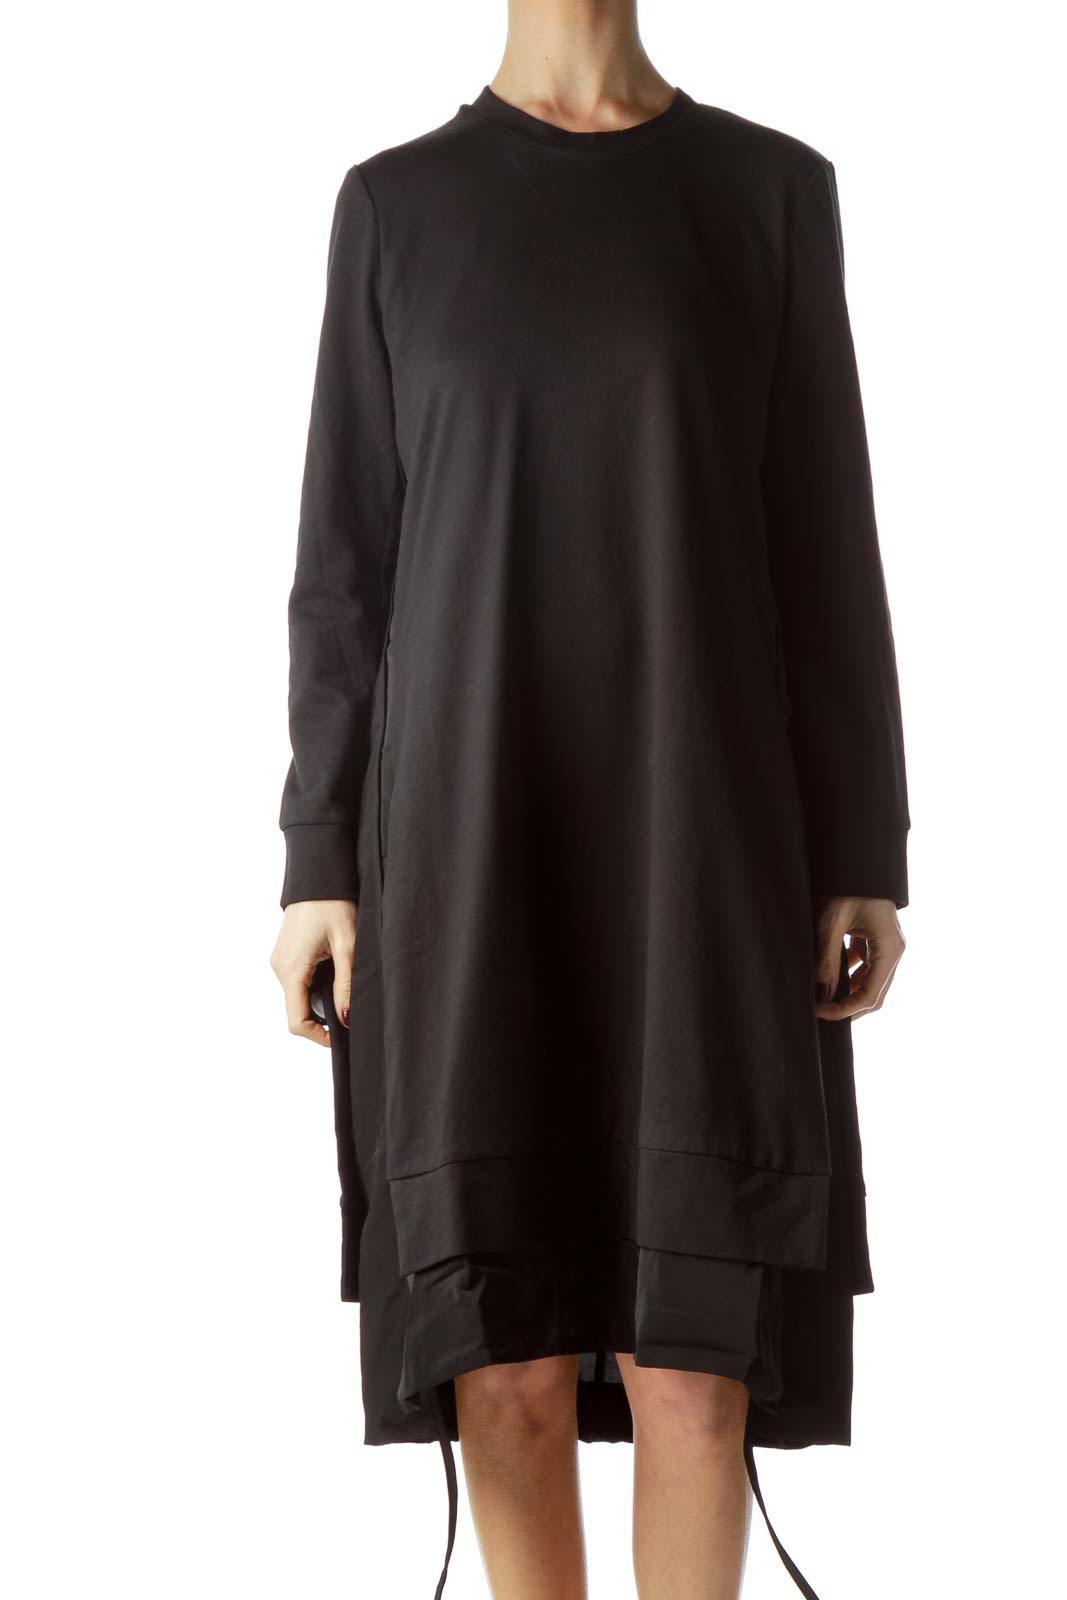 Black Round Neck Sweatshirt Dress